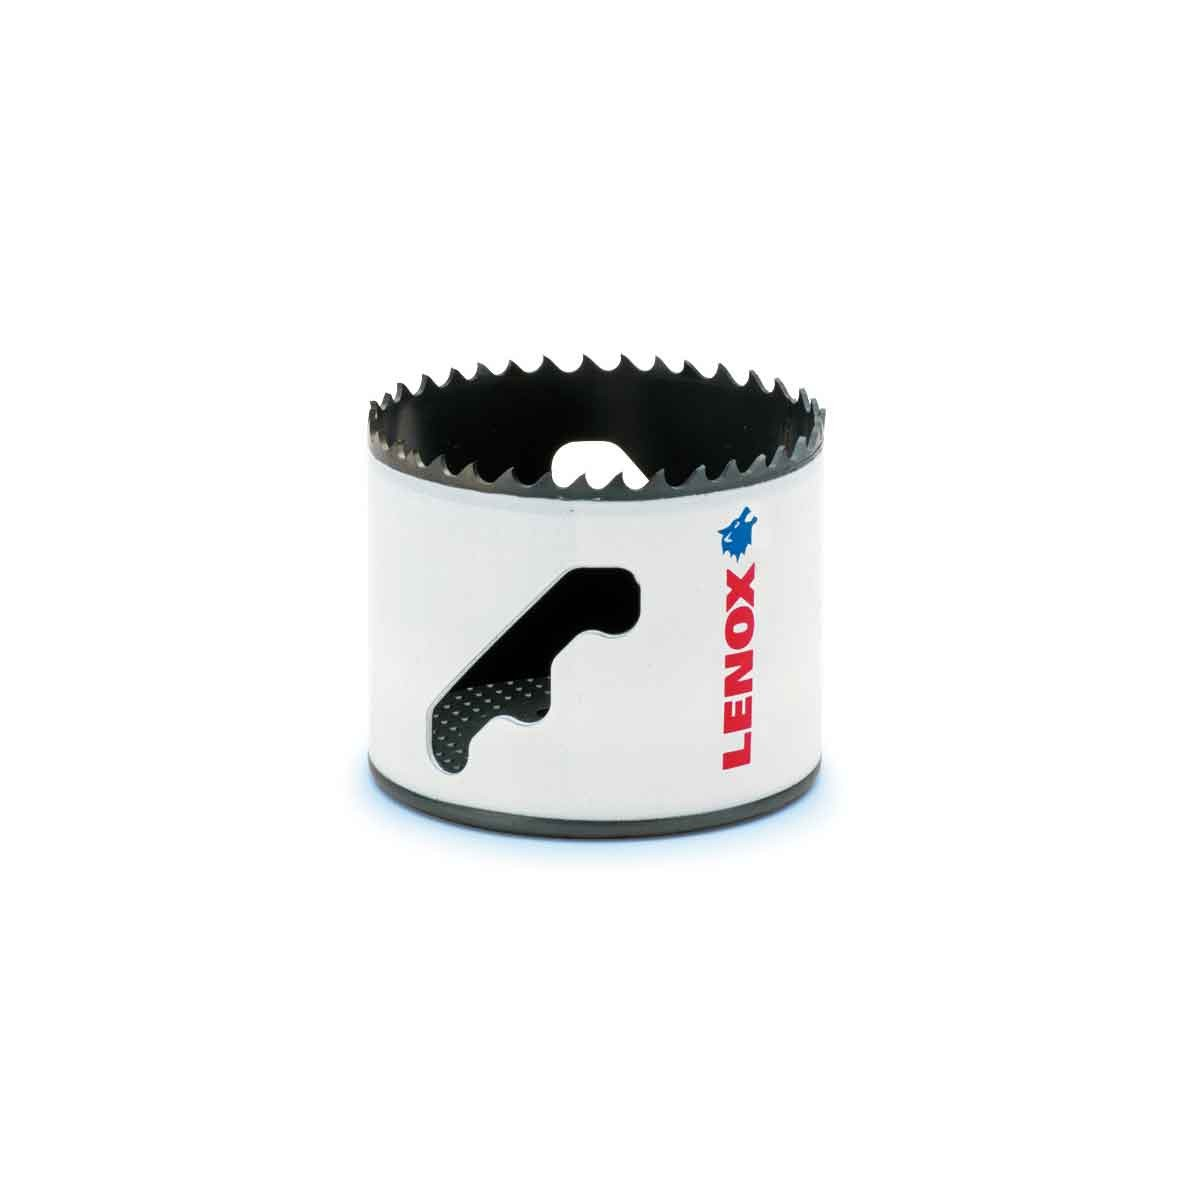 "Lenox 1-7/16"" Bi-Metal Hole Saw, 30023-23L"